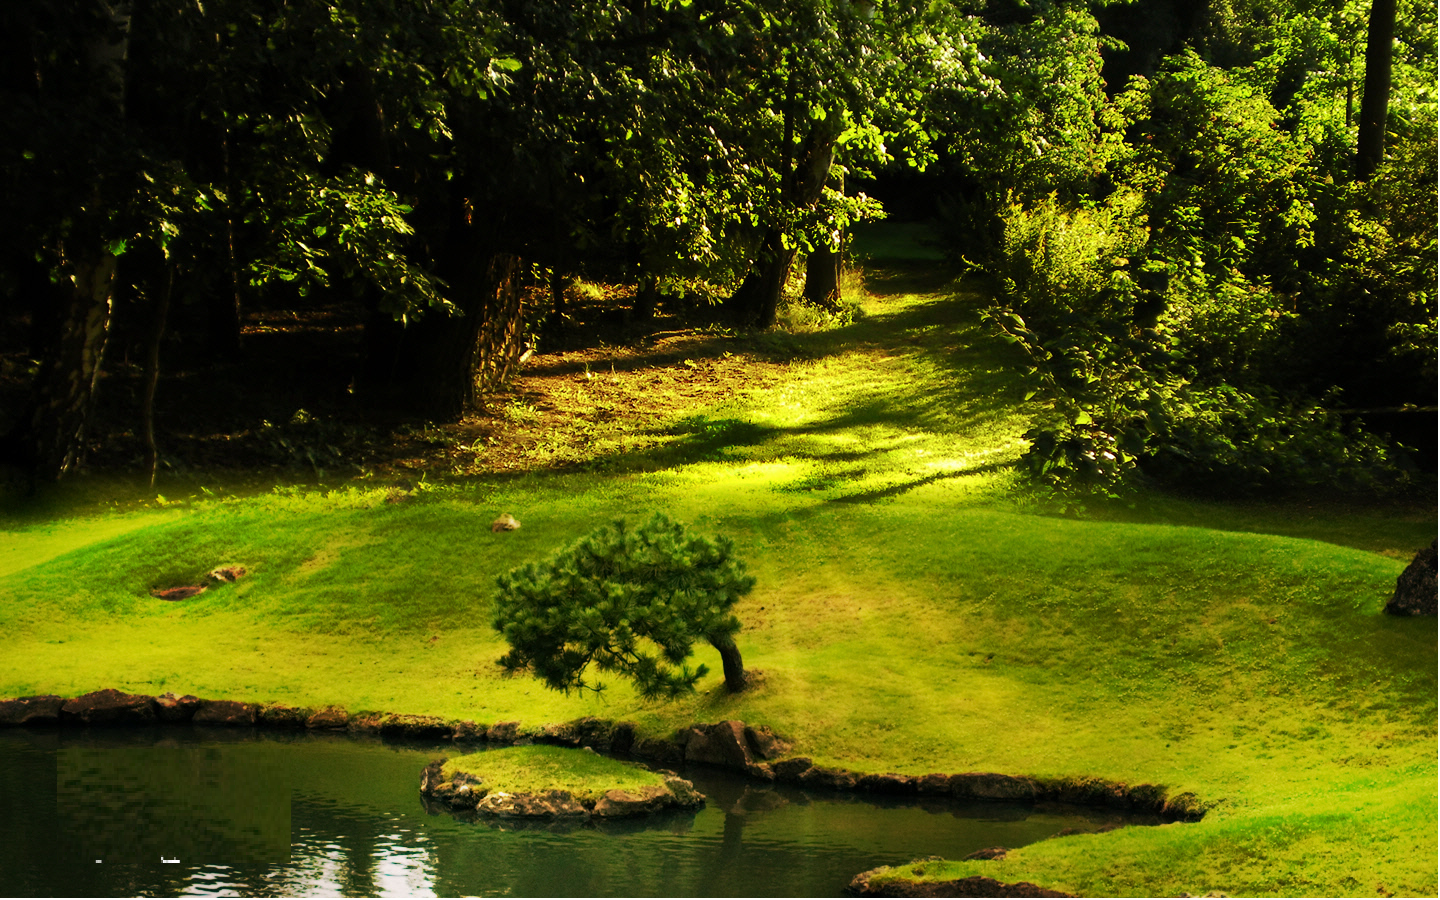 Natural wallpaper background free downloads: Free download Natural Wallpaper background Green ...